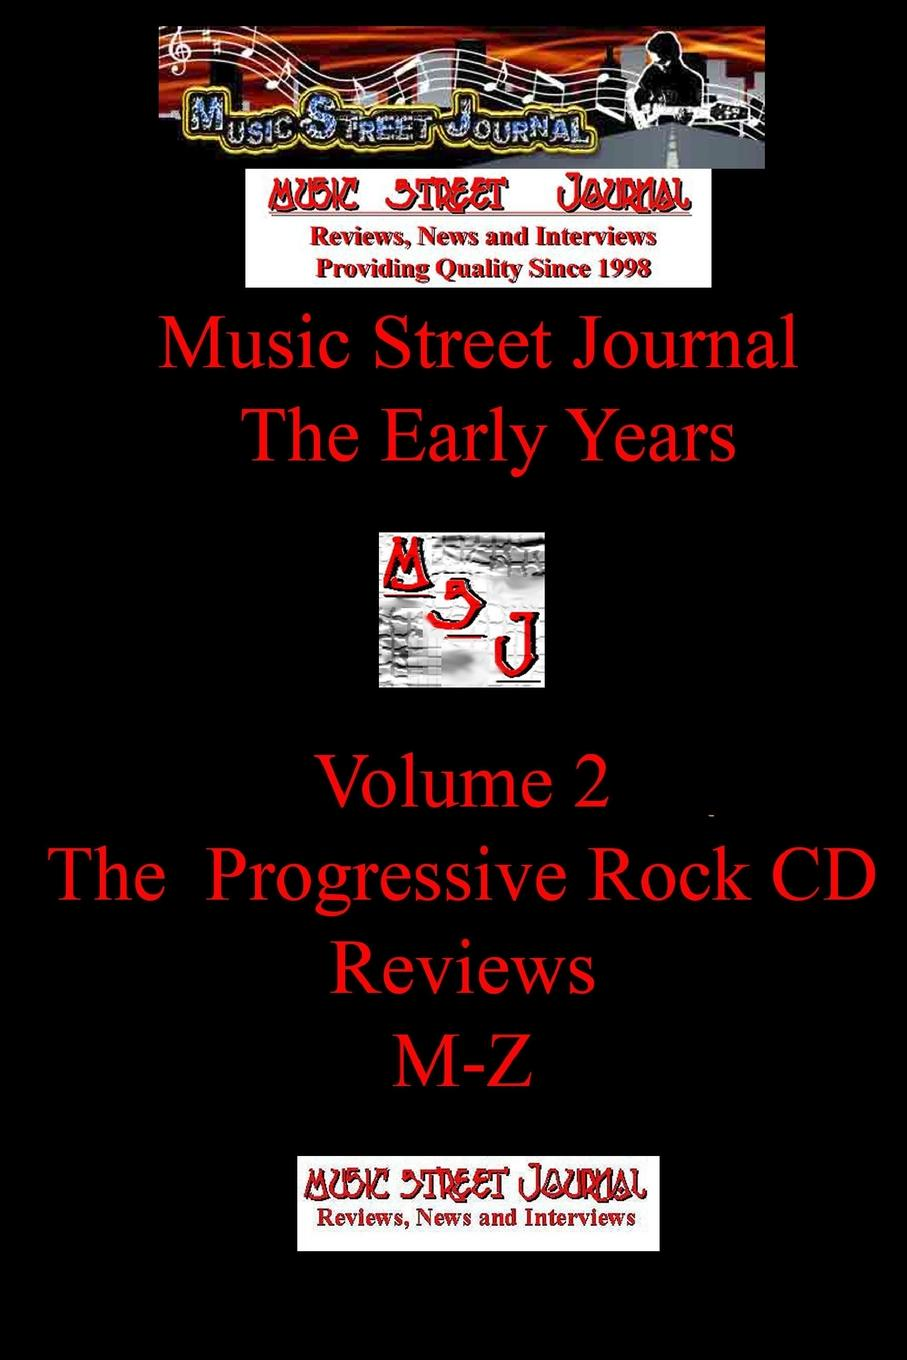 Gary Hill Music Street Journal. The Early Years Volume 2 - The Progressive Rock CD ReviewsM-Z